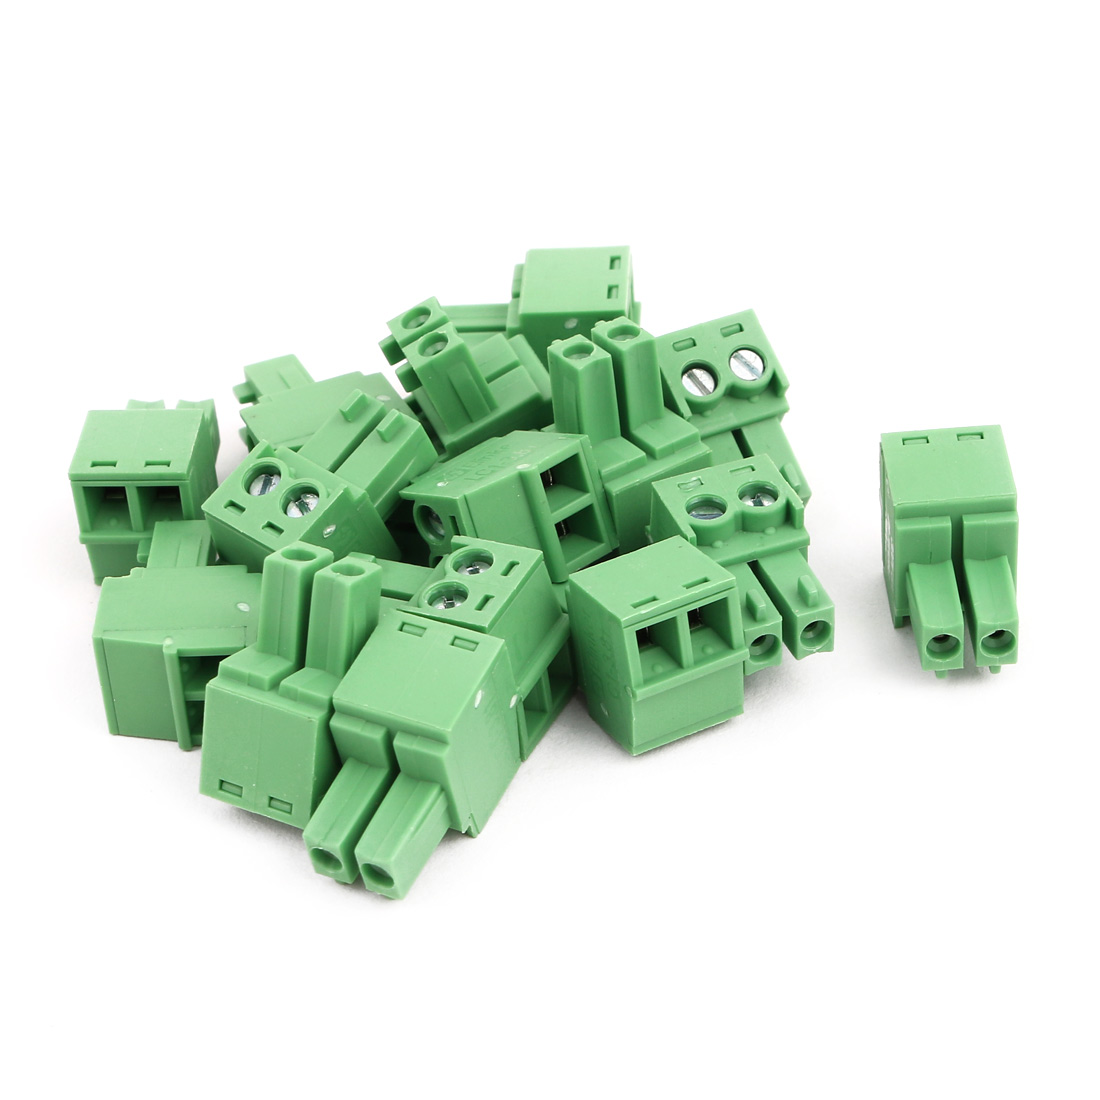 15Pcs AC300V 8A 3.81mm Pitch 2P Terminal Block Wire Connection for PCB Mounting